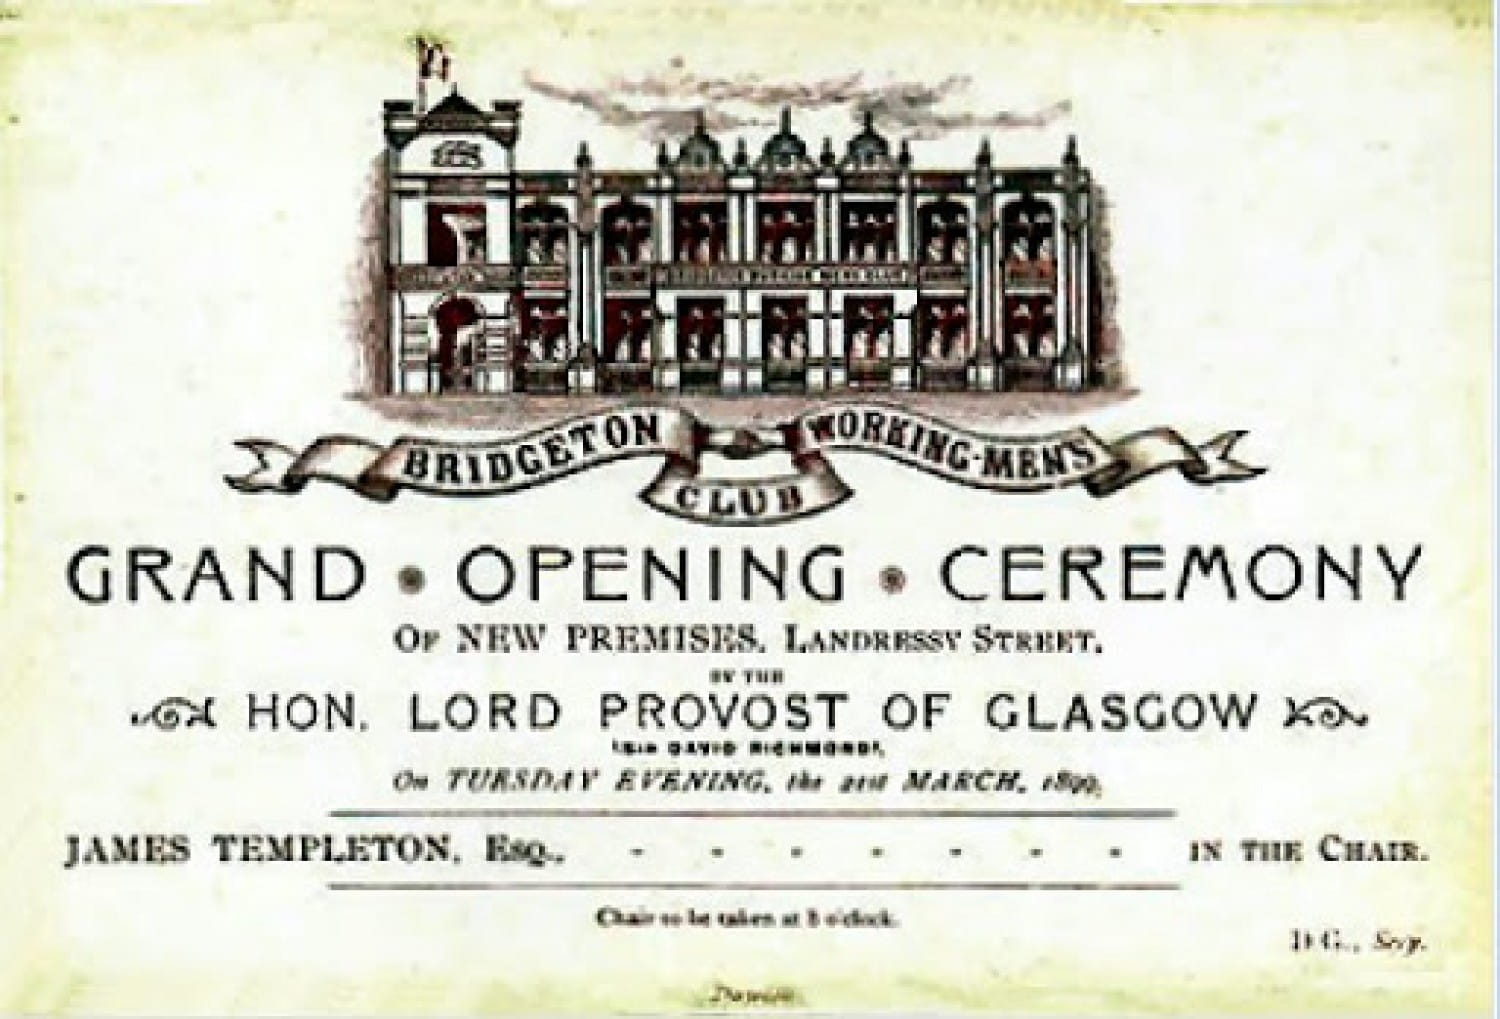 An invite to the opening of the new building (Glasgow City Archive)